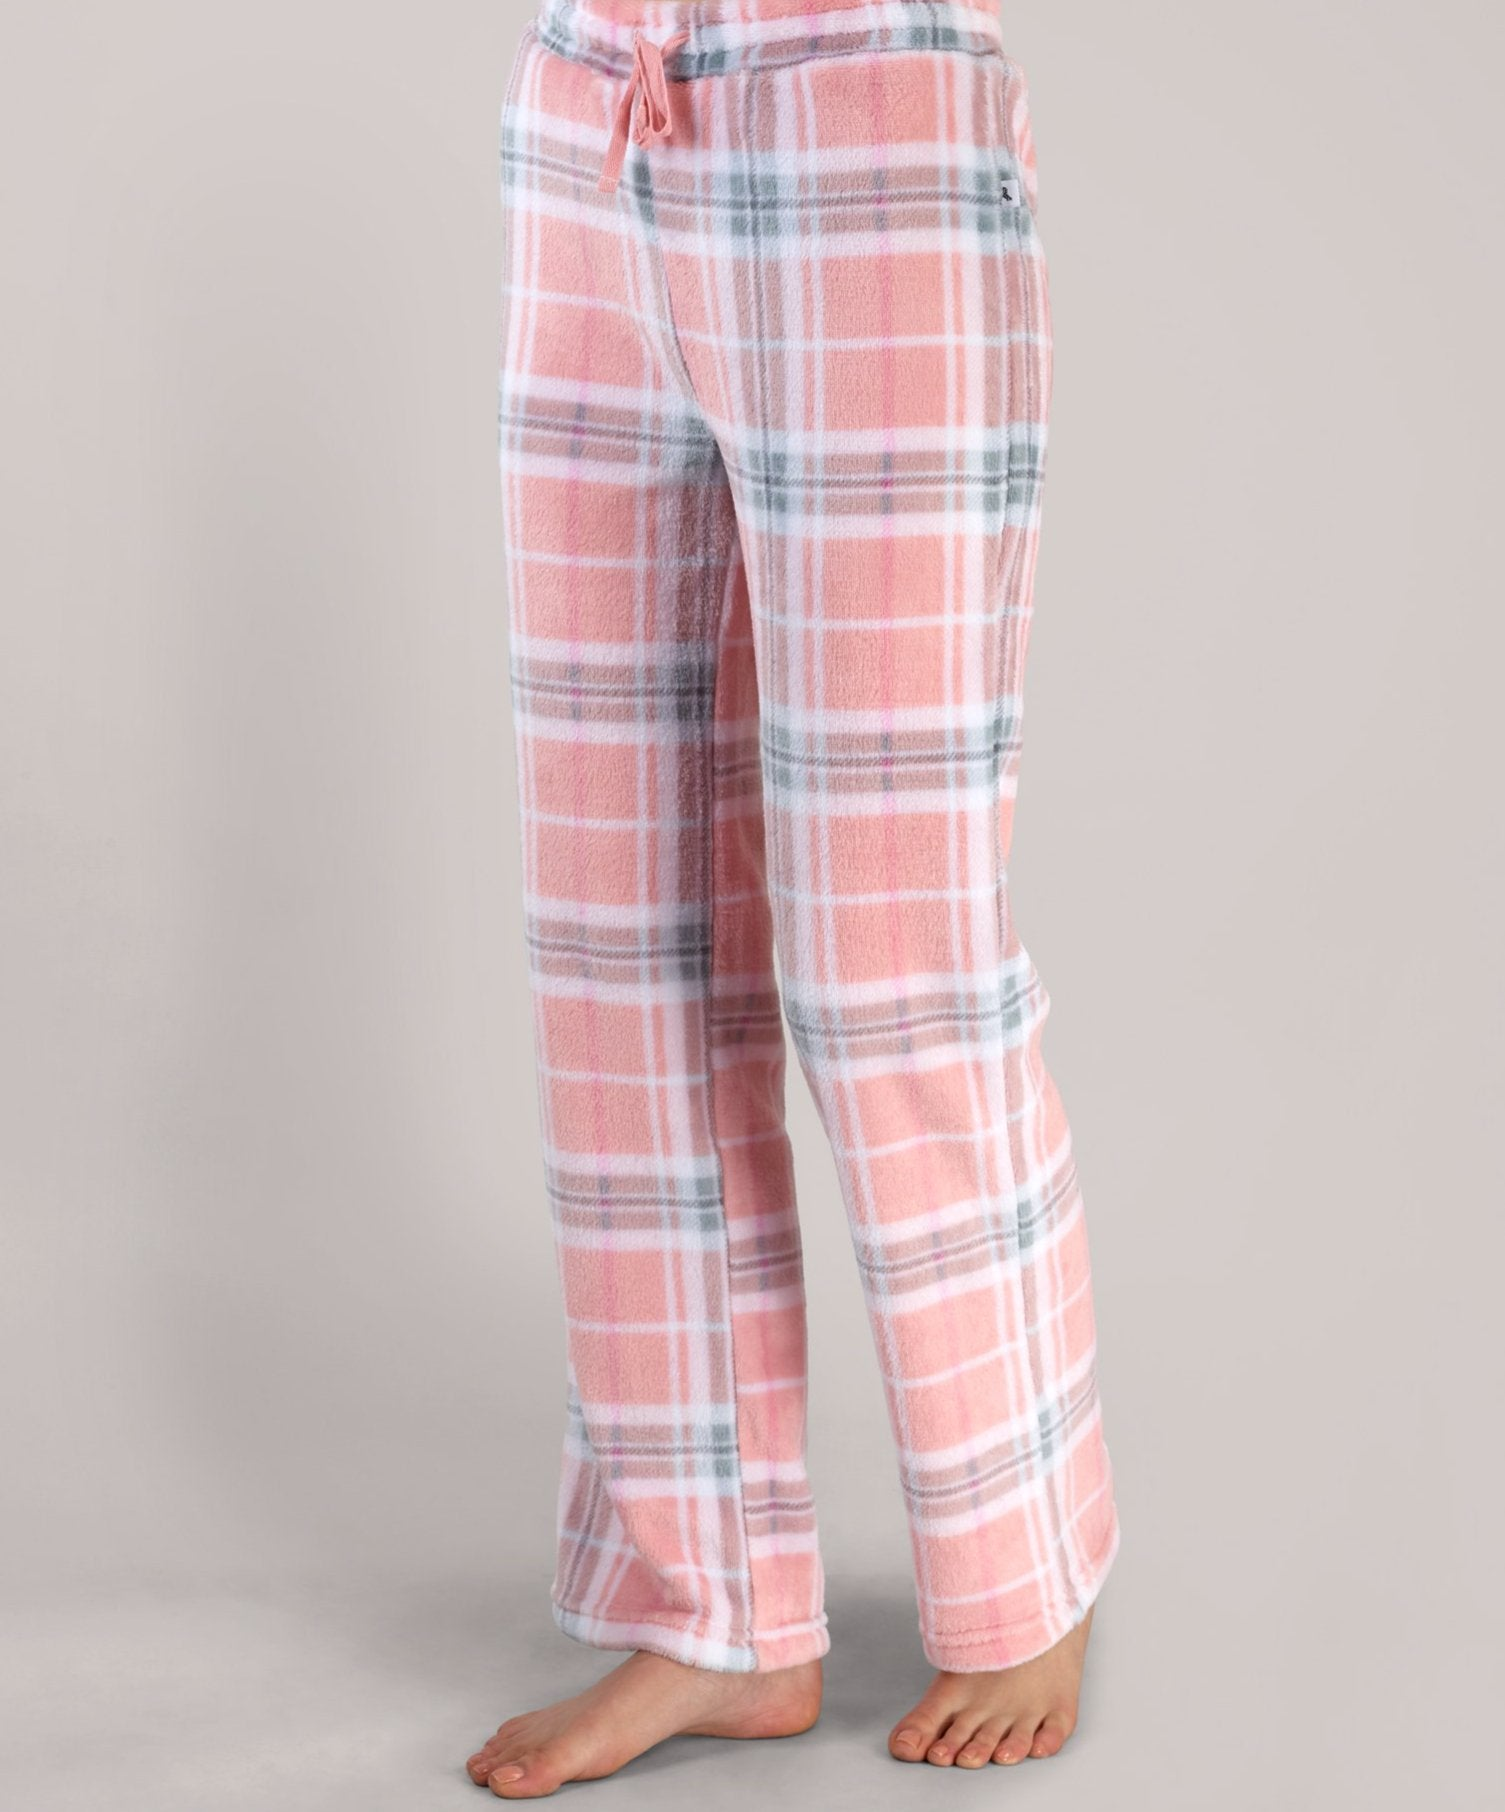 Pink Plaid Lounge Pants - Pink Plaid Lounge Pants